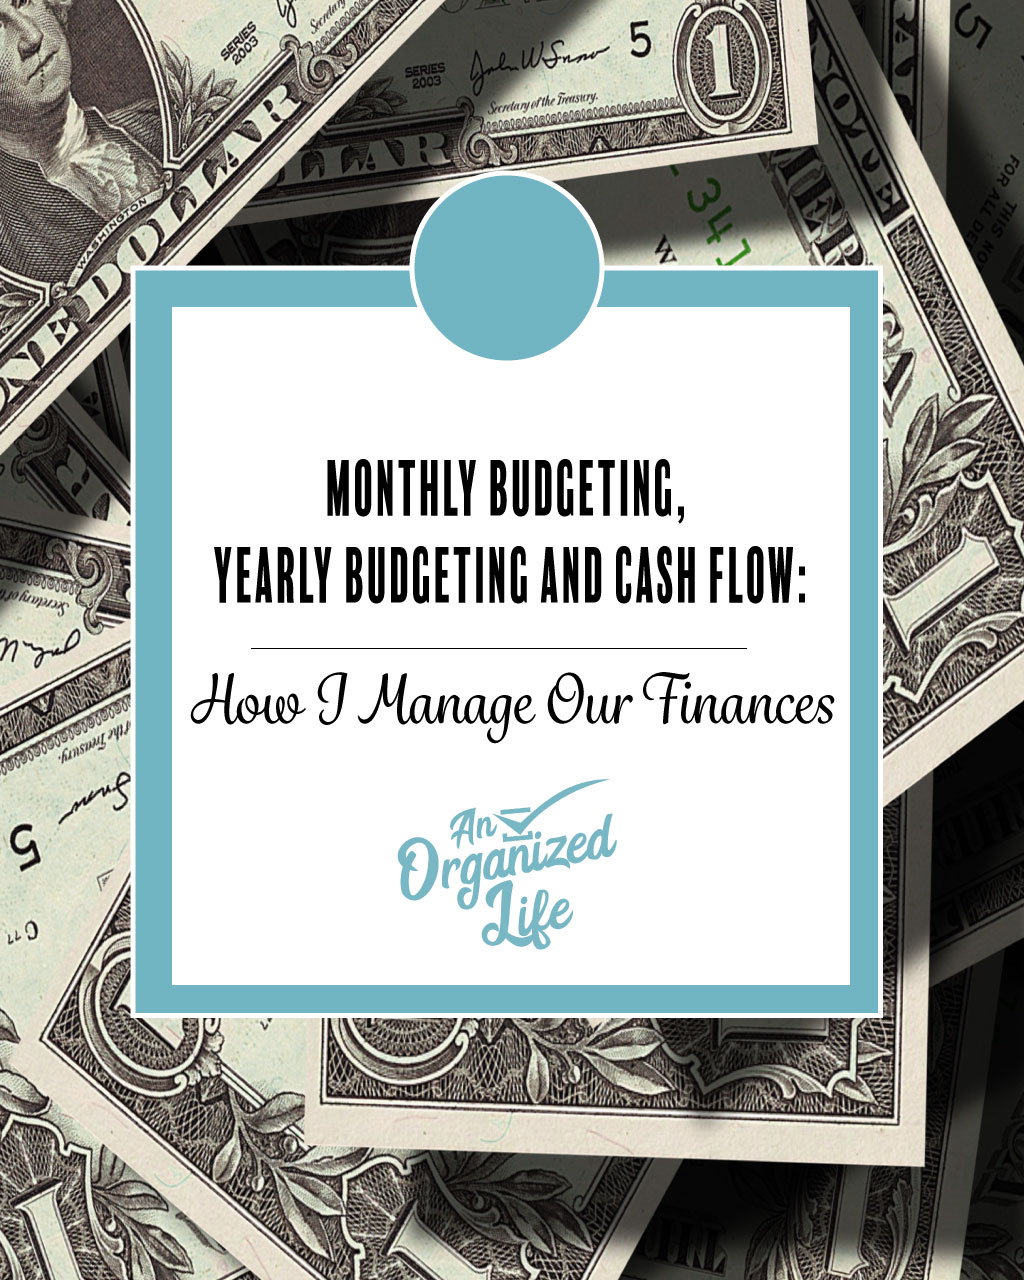 Monthly, Yearly budgeting and cash flow